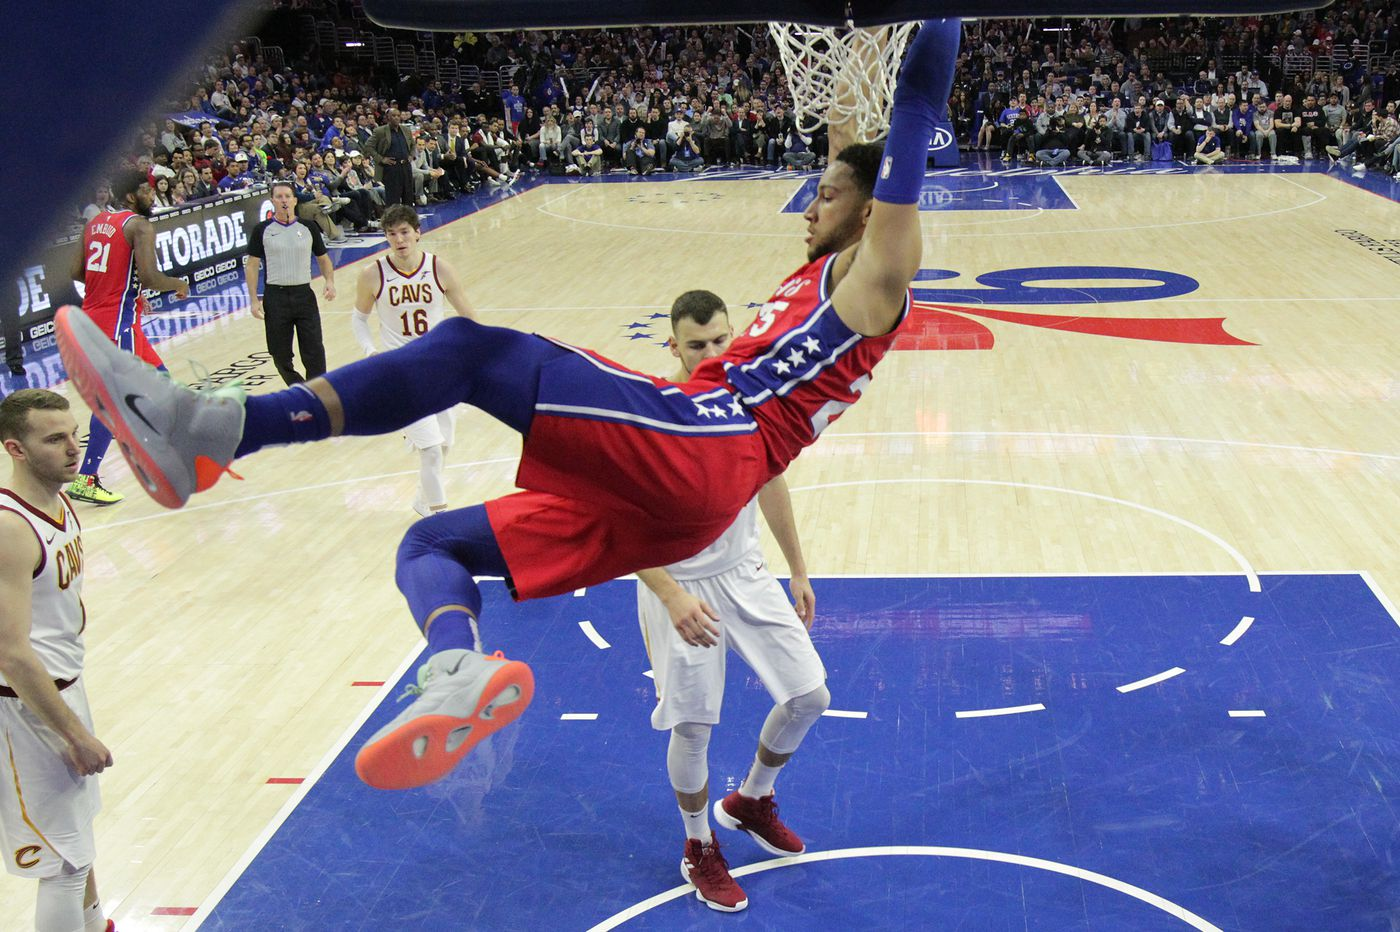 Sixers struggle, but edge shorthanded Cavaliers for home win